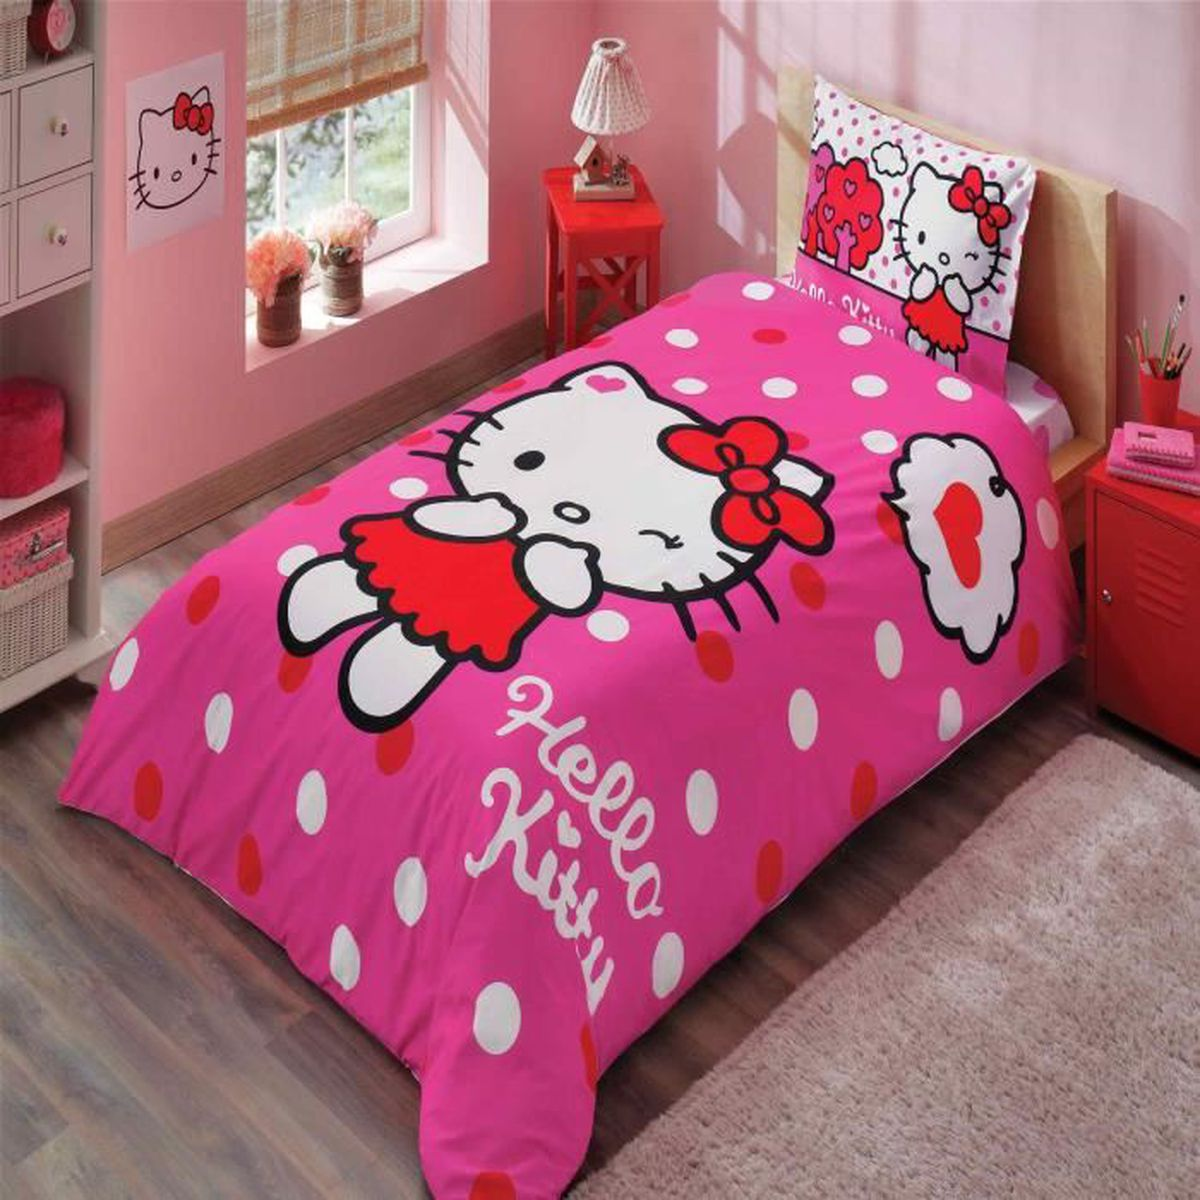 hello kitty imprim e 100 coton 1 personne parure de couette 3 pcs housse de couette 160x220 cm. Black Bedroom Furniture Sets. Home Design Ideas